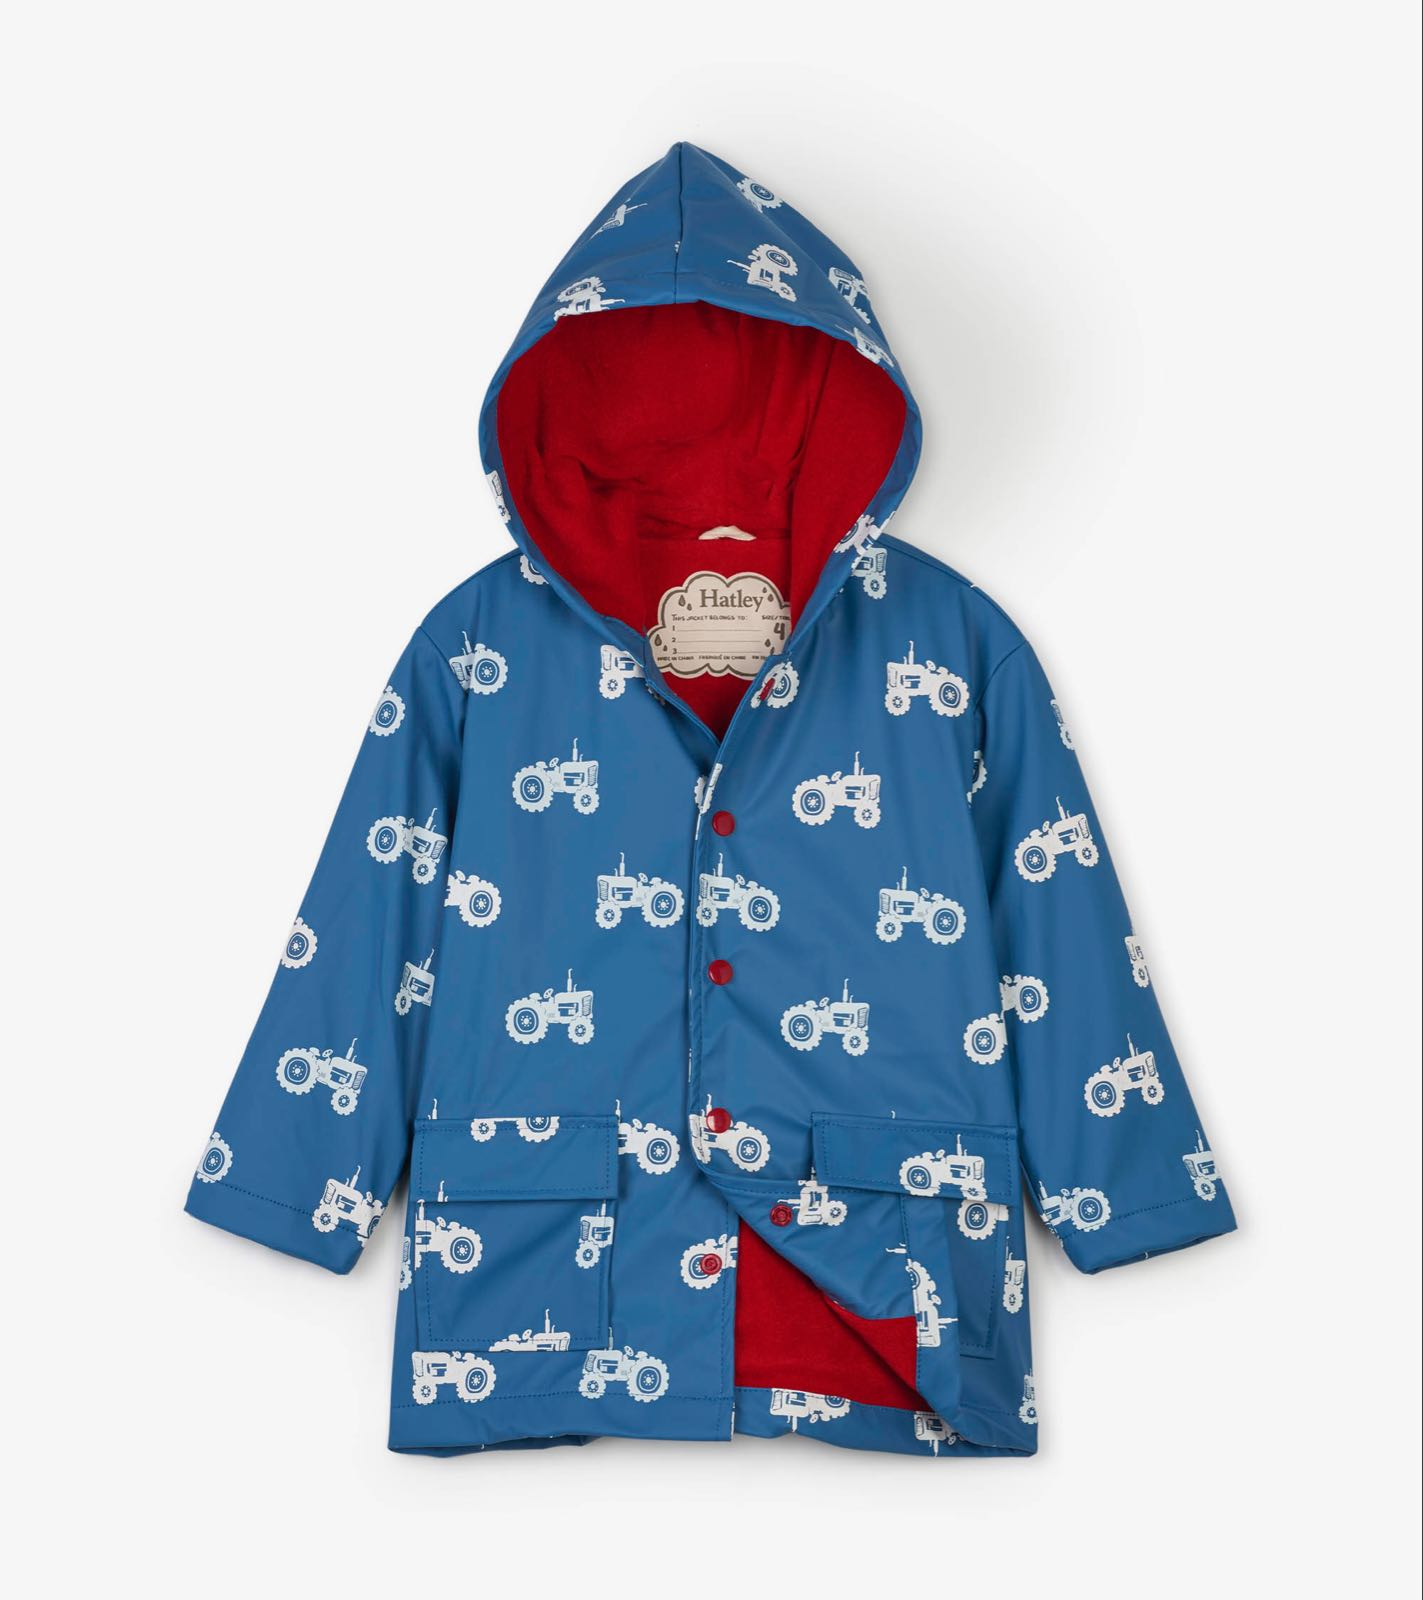 Hatley Farm Tractors Colour Changing Raincoat